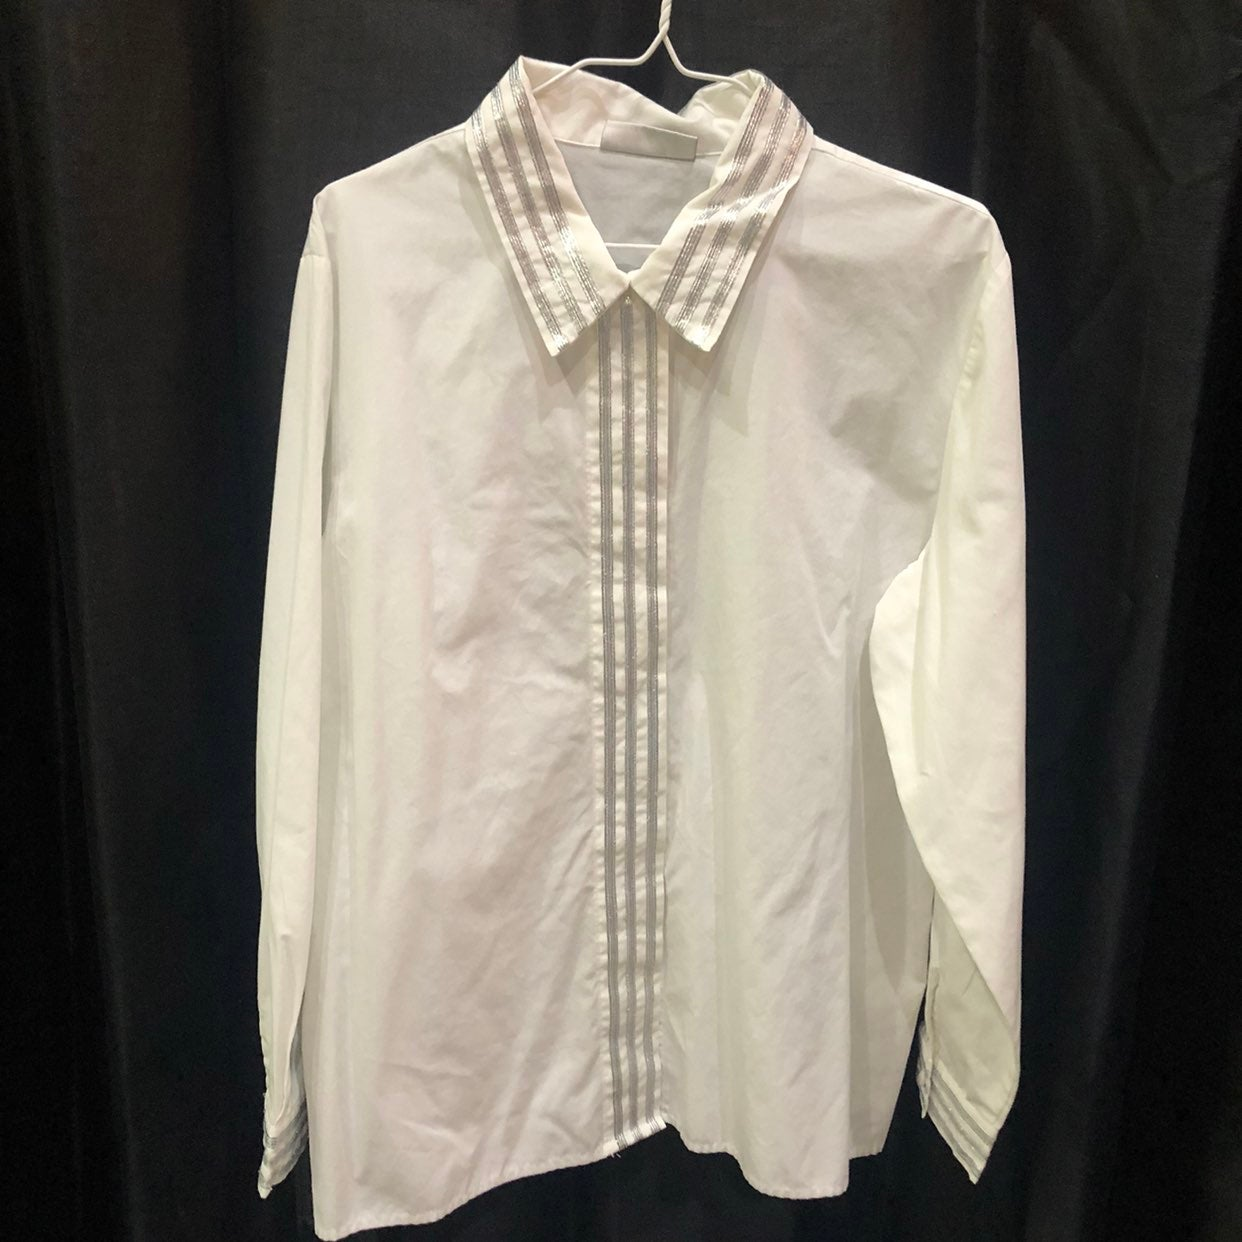 Size 14, White Blouse W/Silver Accents